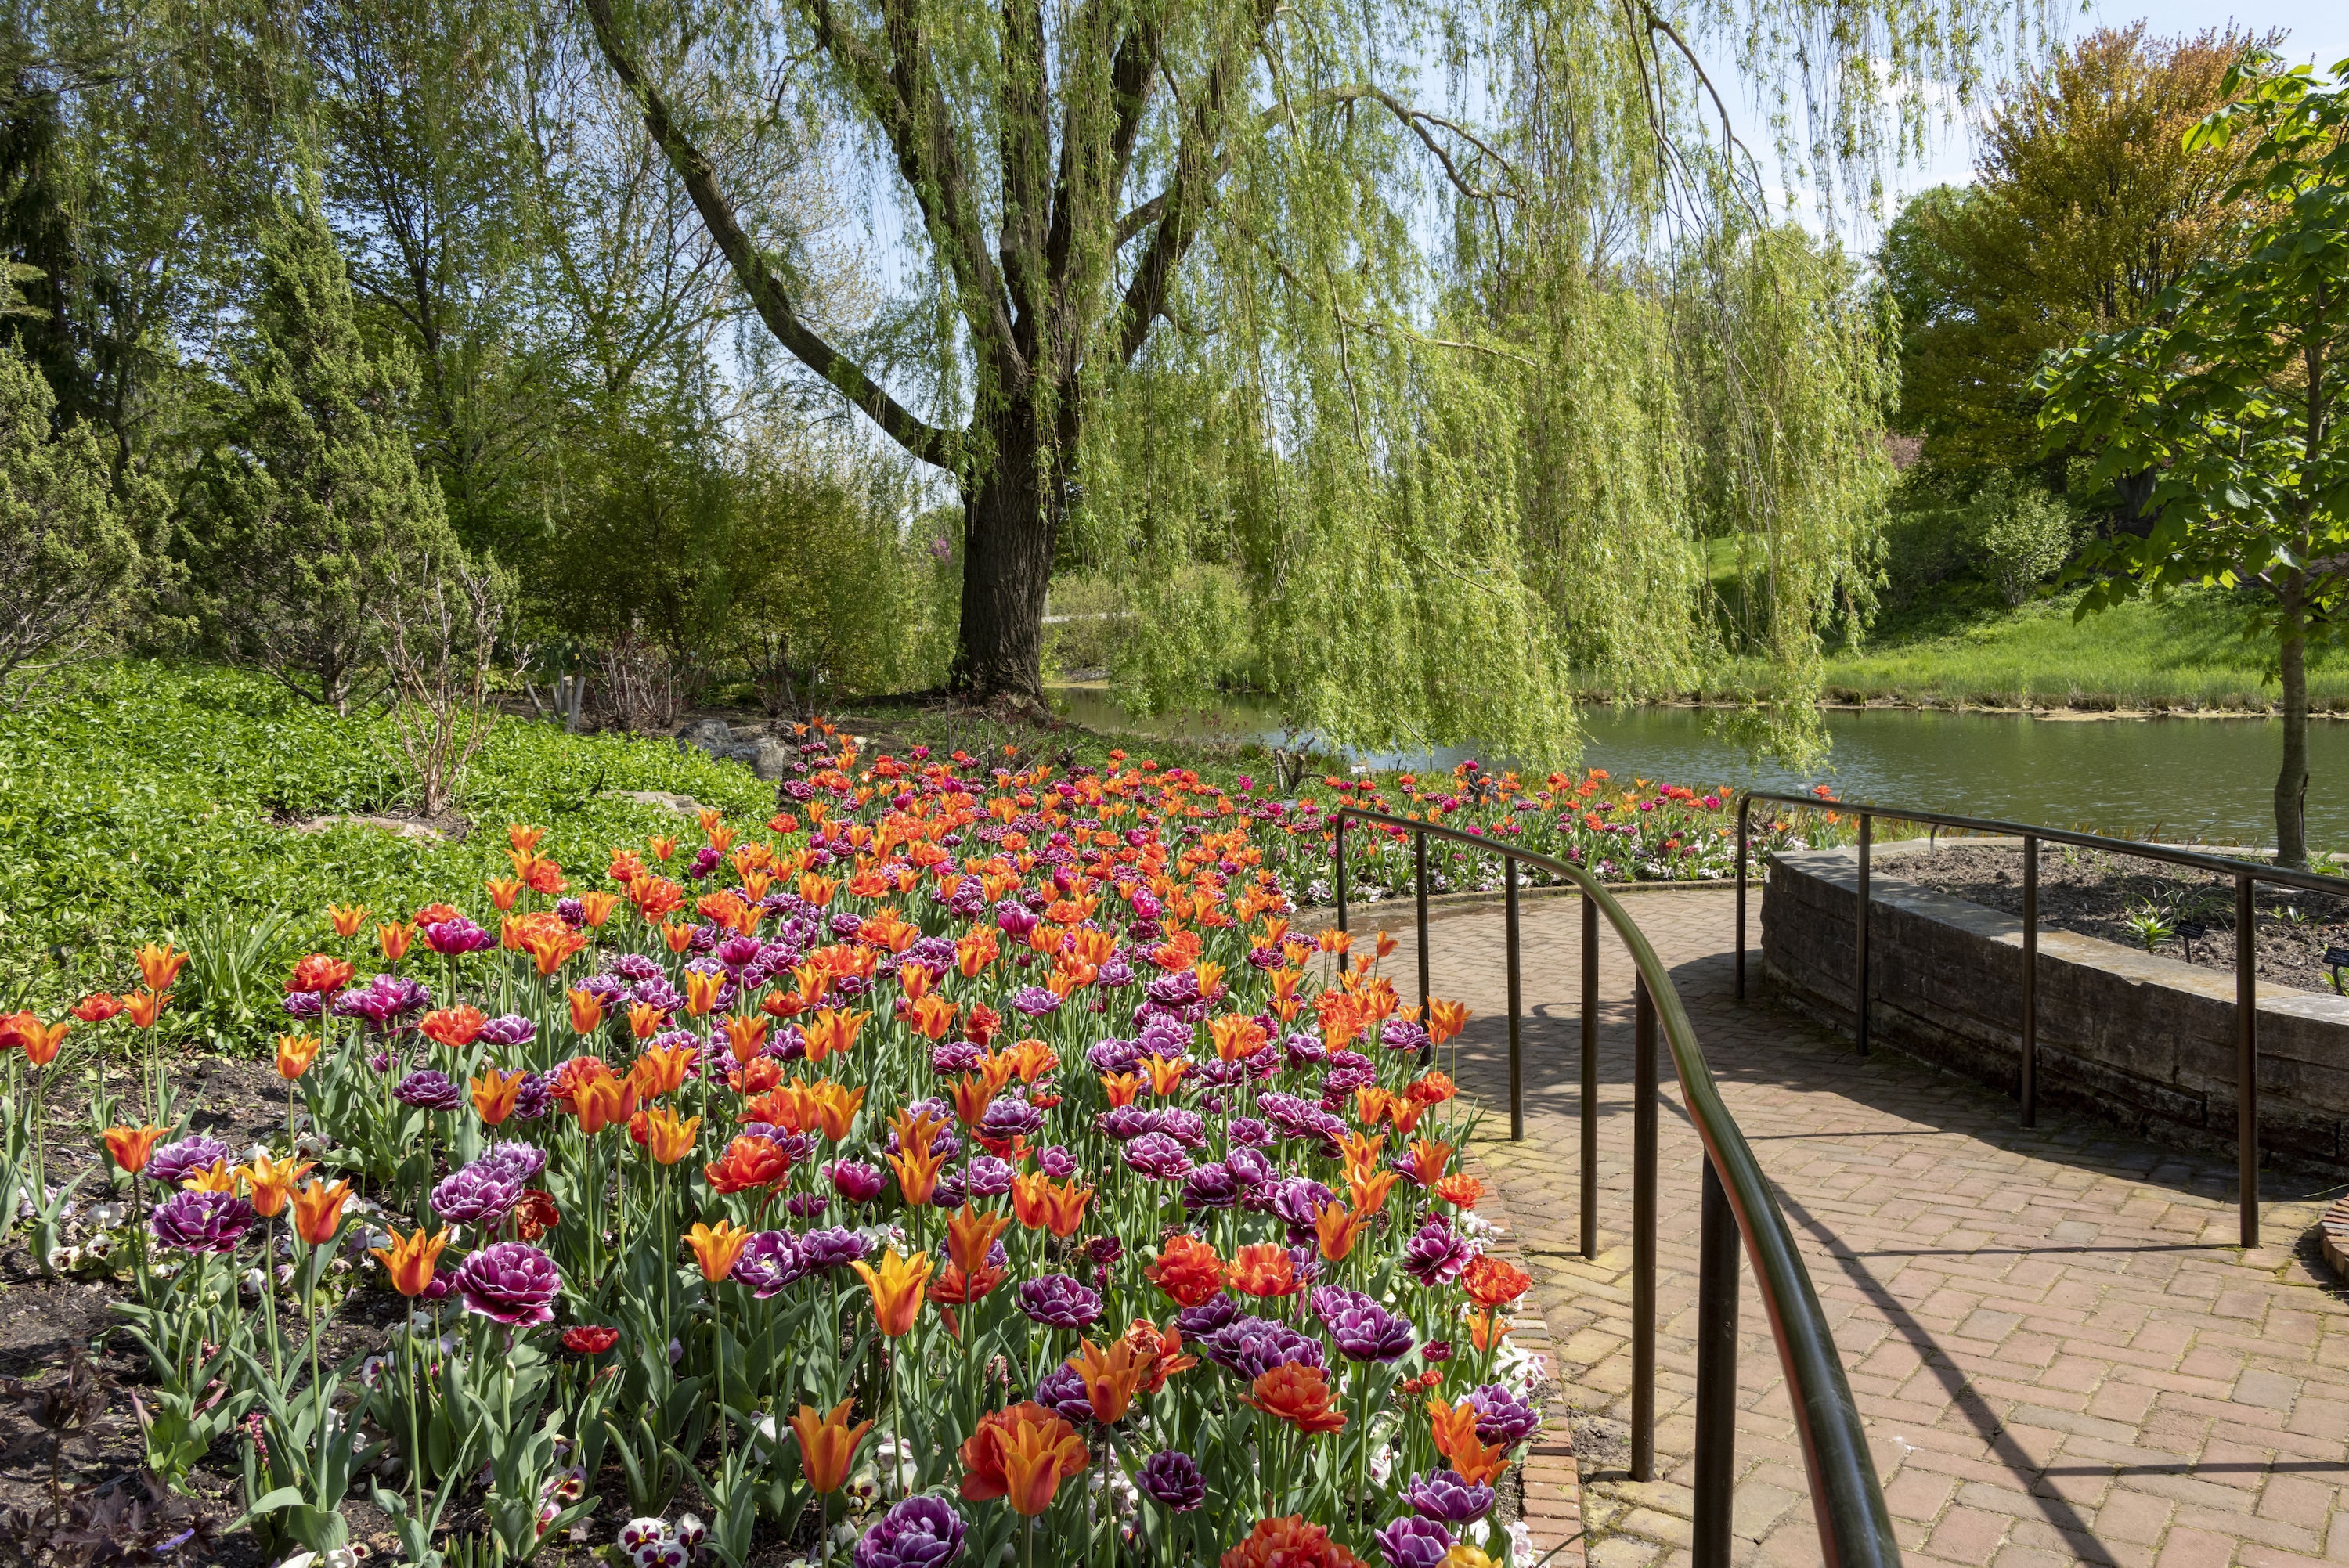 The Chicago Botanic Garden will welcome visitors again, beginning on June 9